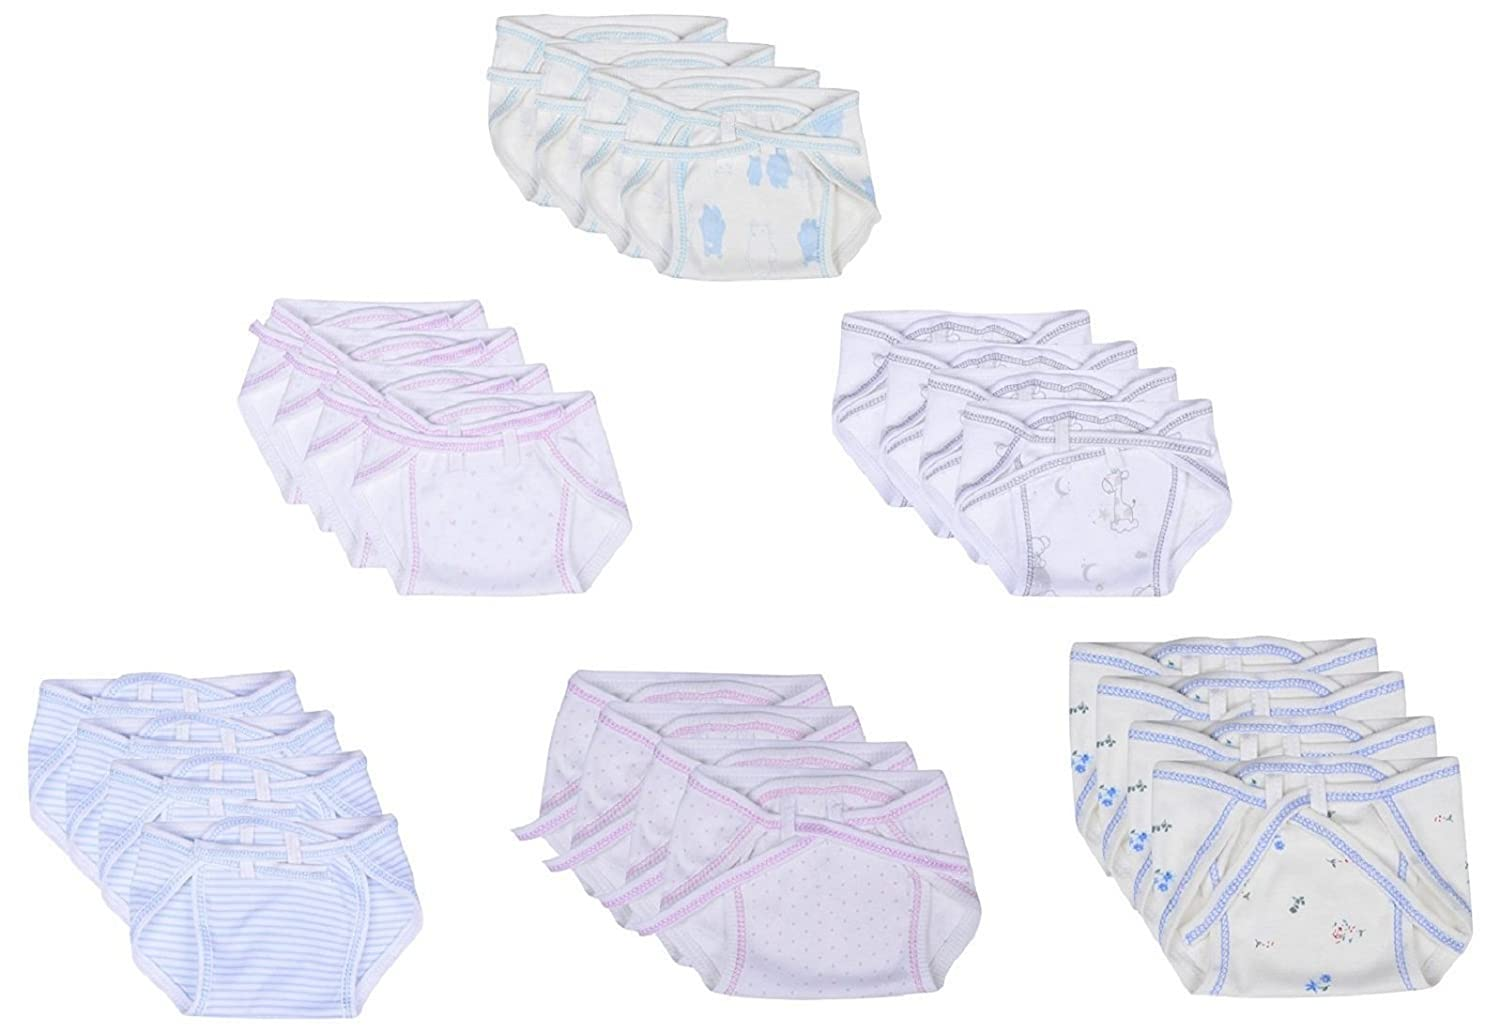 RBC Riya R Newborn Baby Hosiery Cotton Cloth Nappies Pack of 36 pcs (Multi)